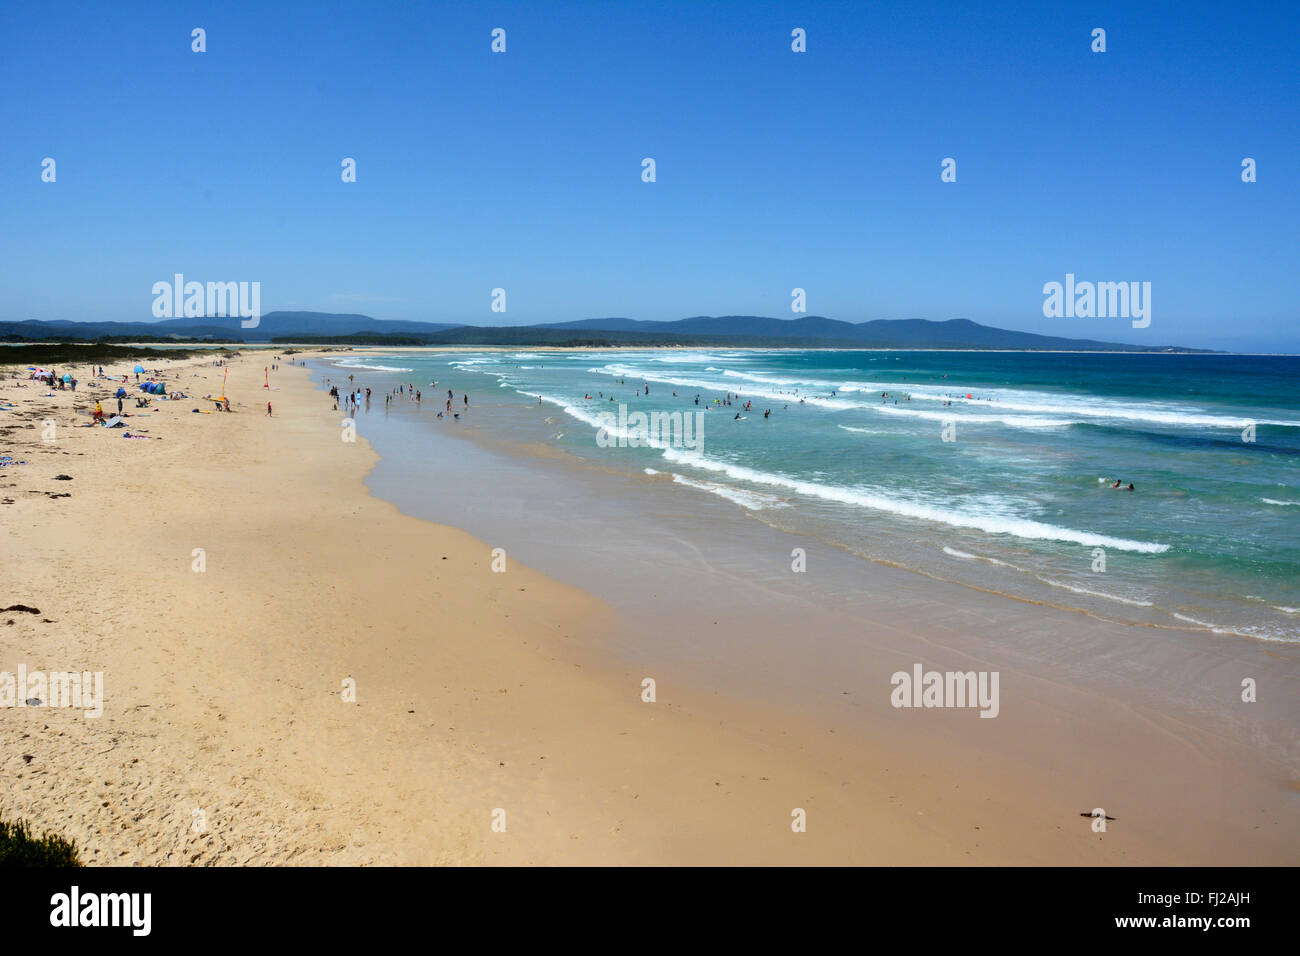 Bastion Point beach in Mallacoota, VIC - Stock Image